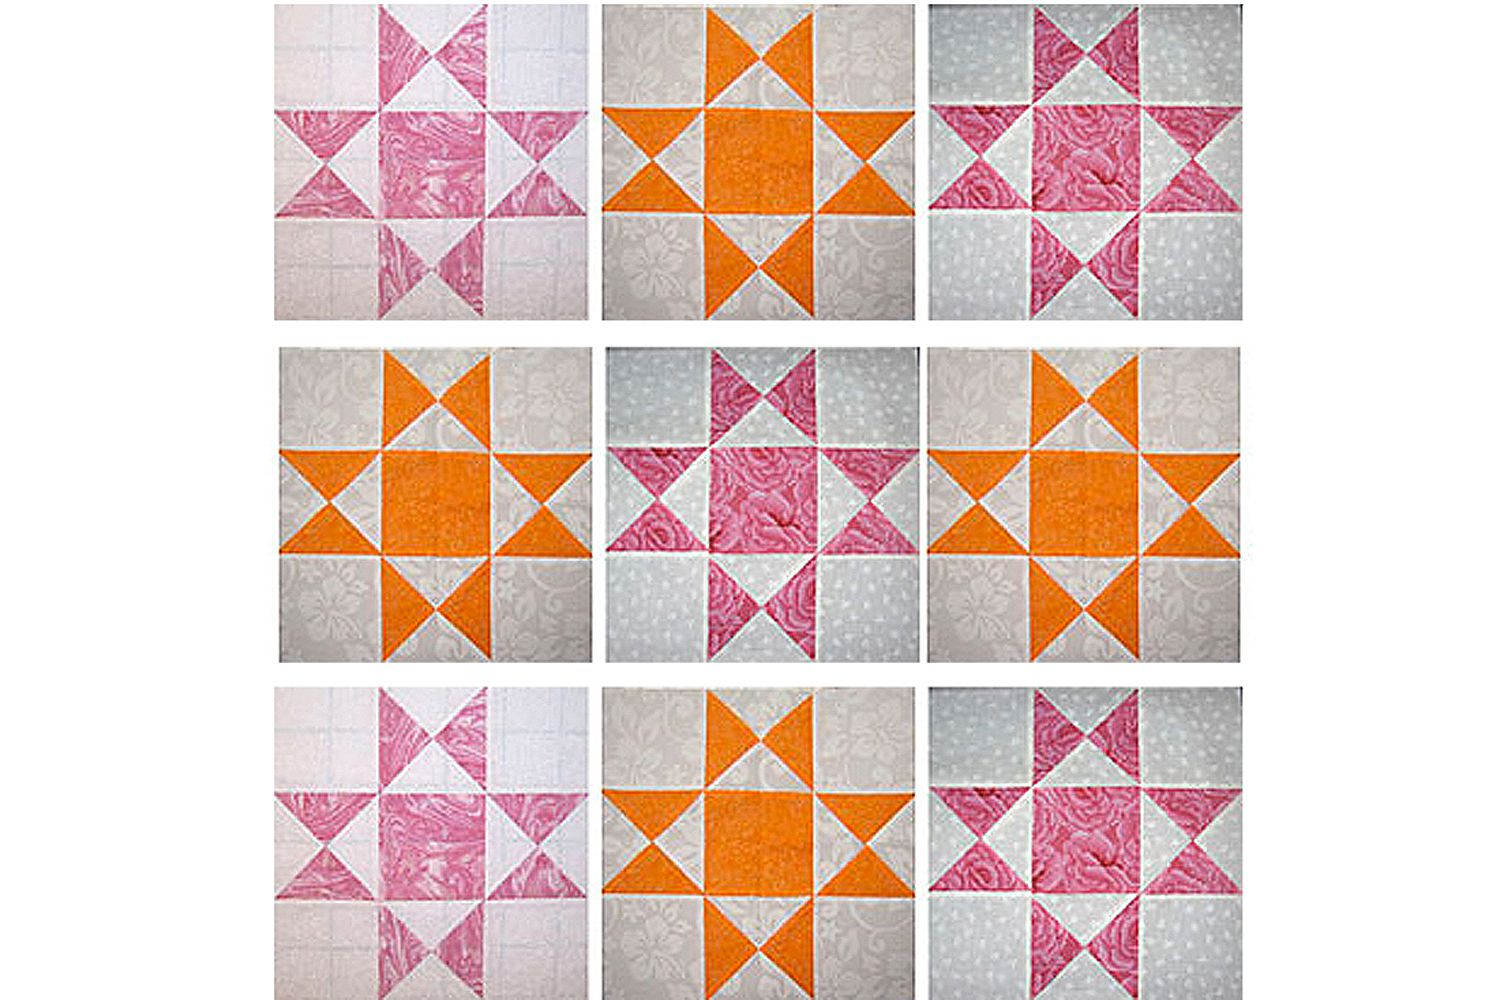 Free 12 Inch Quilt Block Patterns : easy 12 inch quilt block patterns - Adamdwight.com